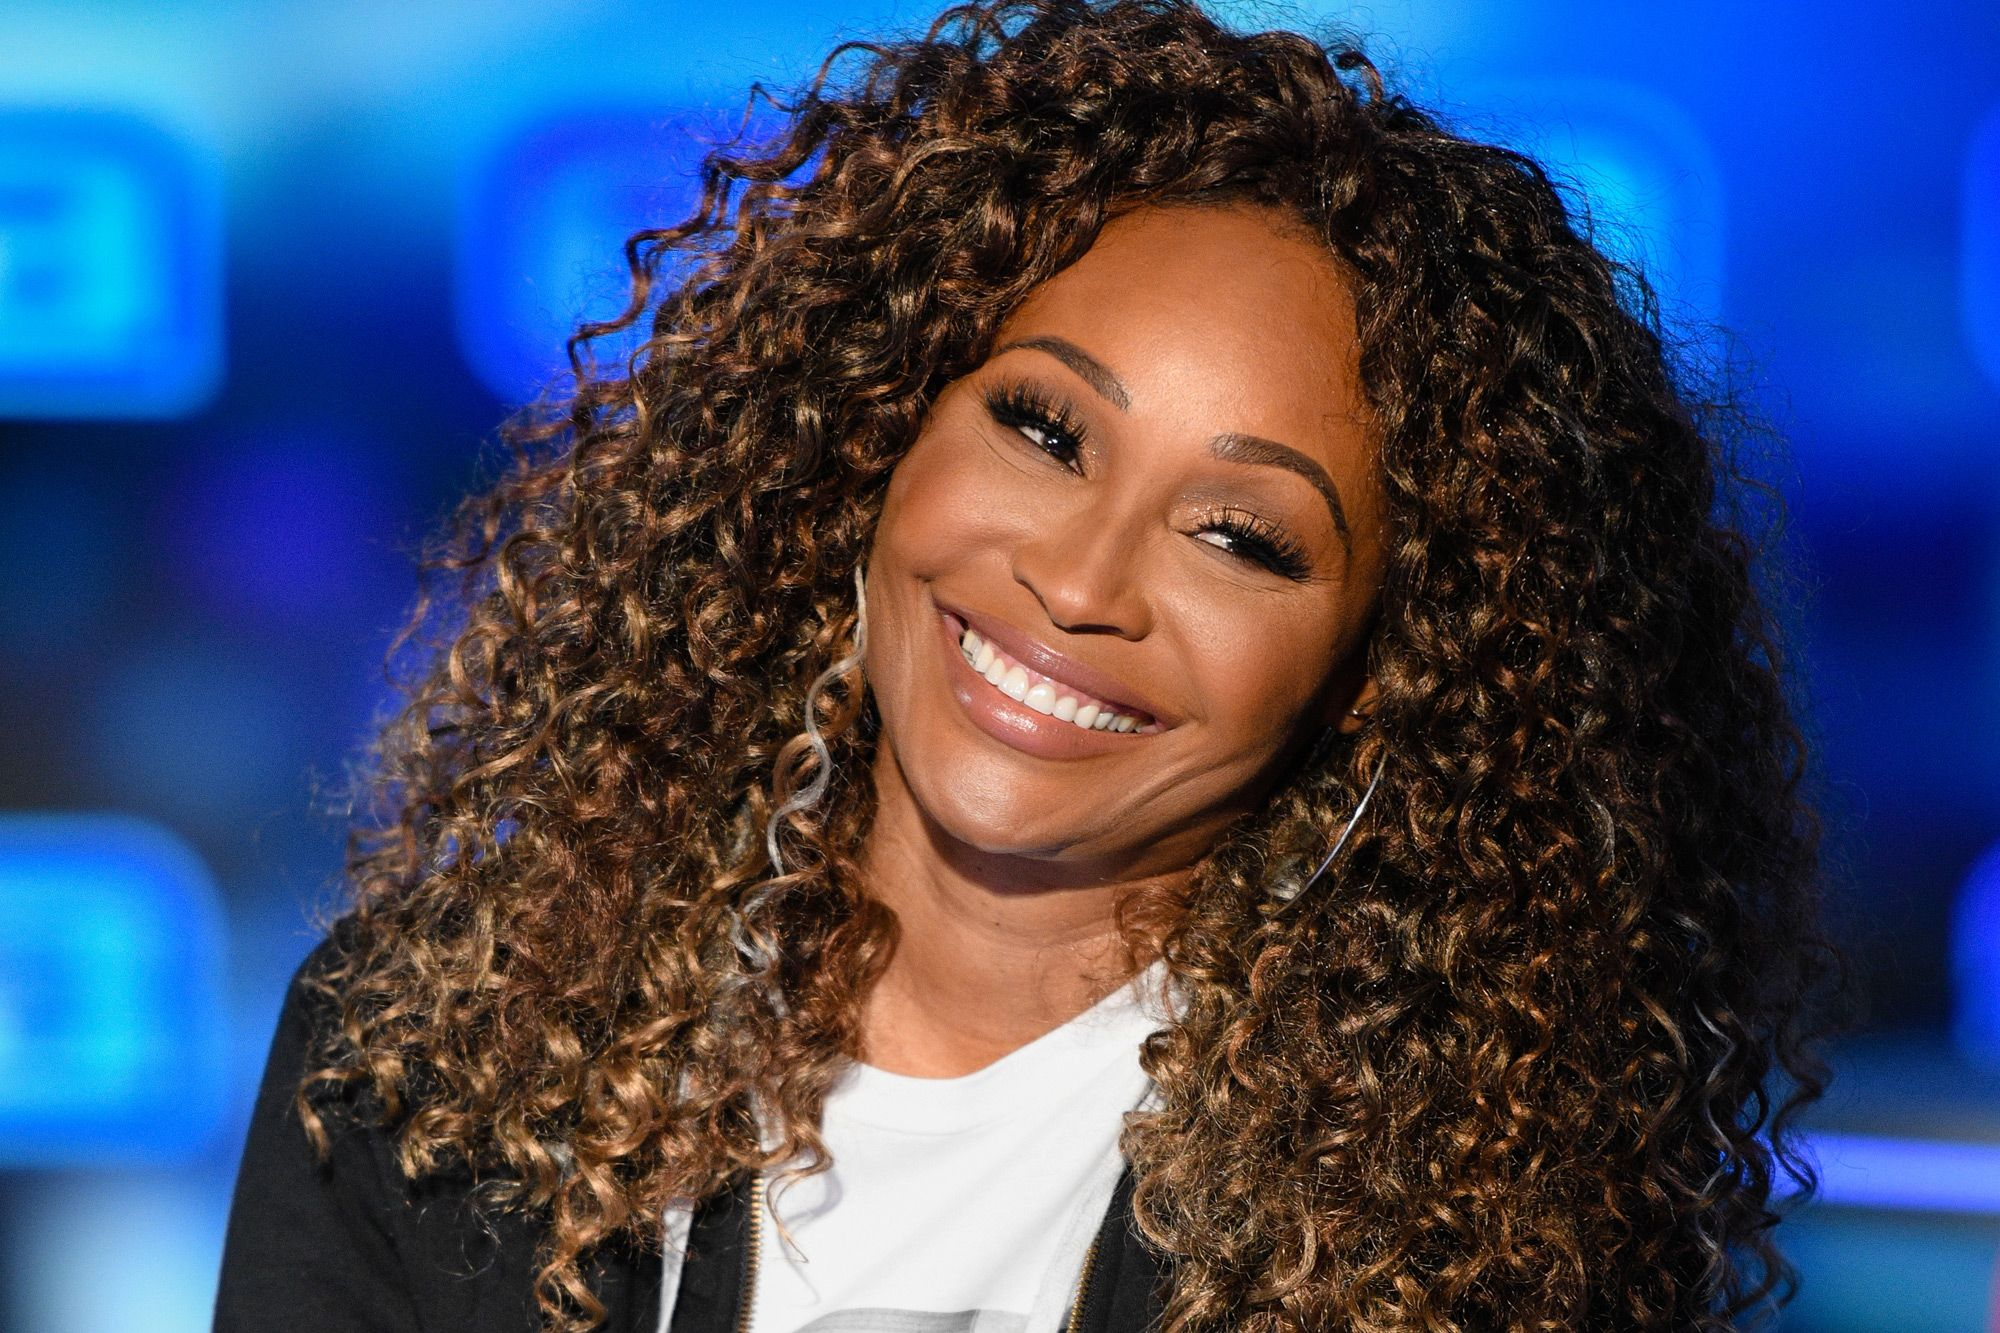 Cynthia Bailey Shares A Clip From RHOA's Behind The Scenes – Check Out Her Confessional Look